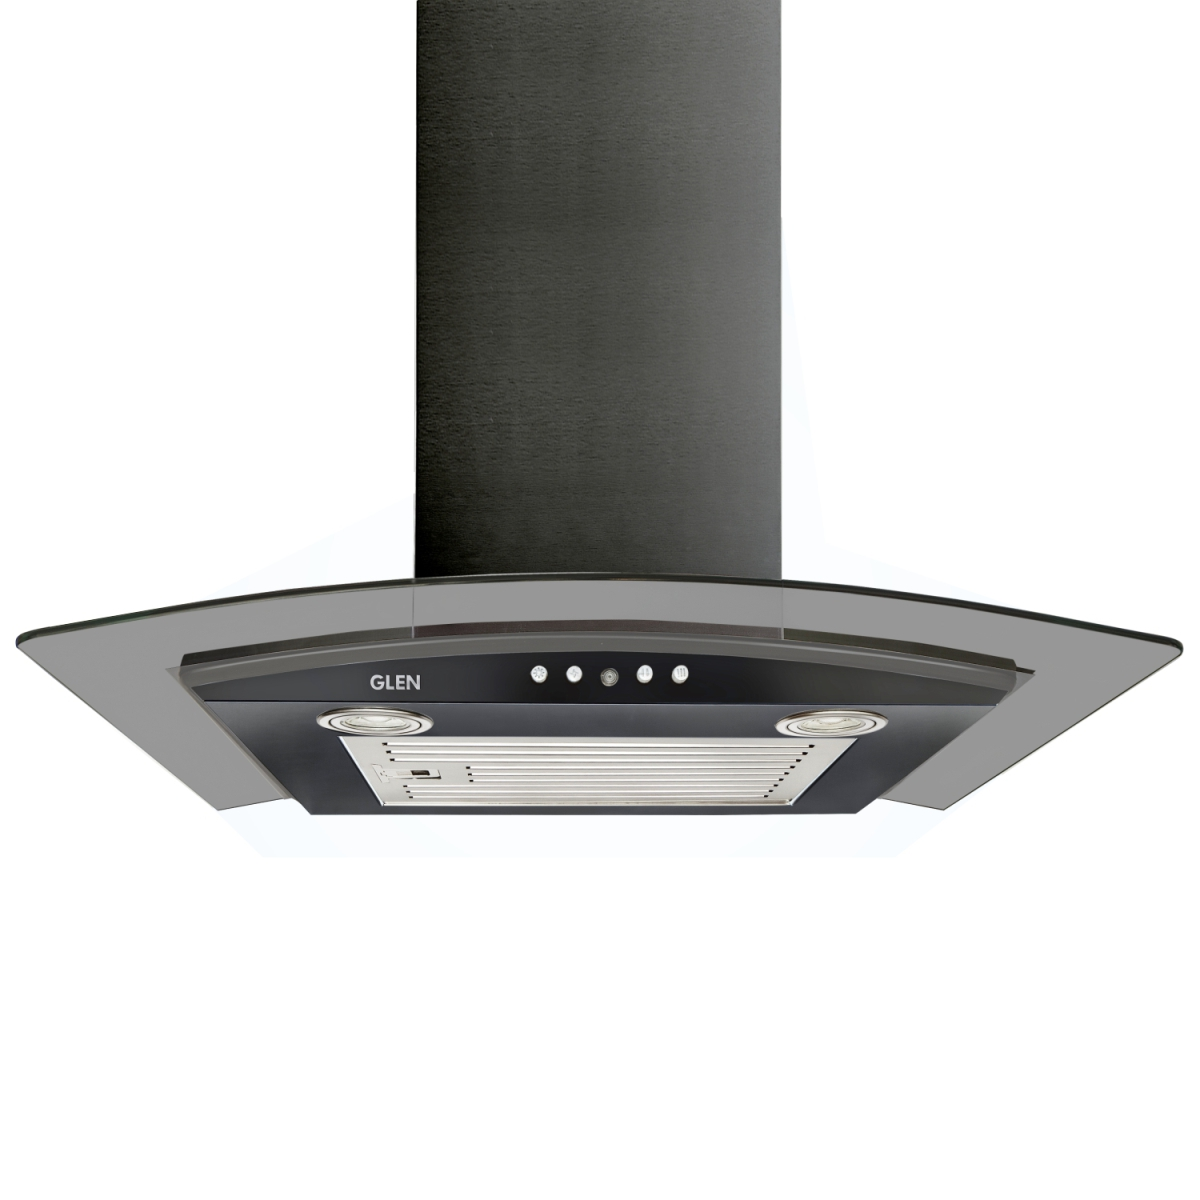 Glen Stainless steel Black Kitchen Chimney 6071 by Glen